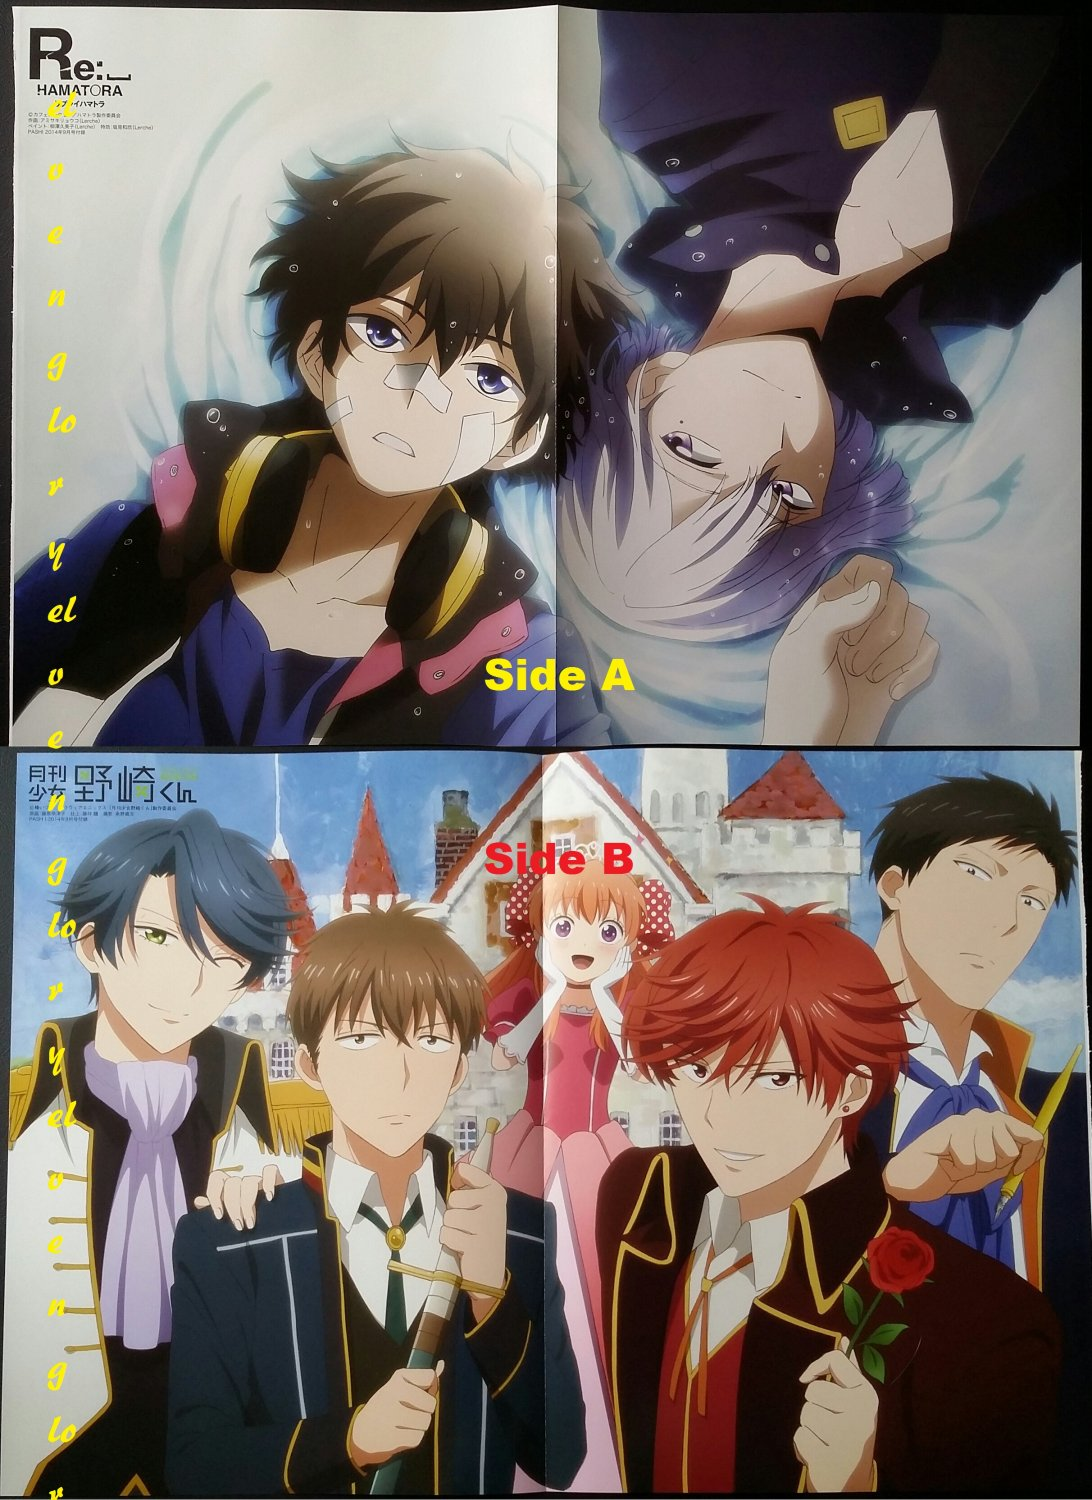 Re:_Hamato / Gekka Shojo Nozaki-kun Double-sided Poster / Pin-up